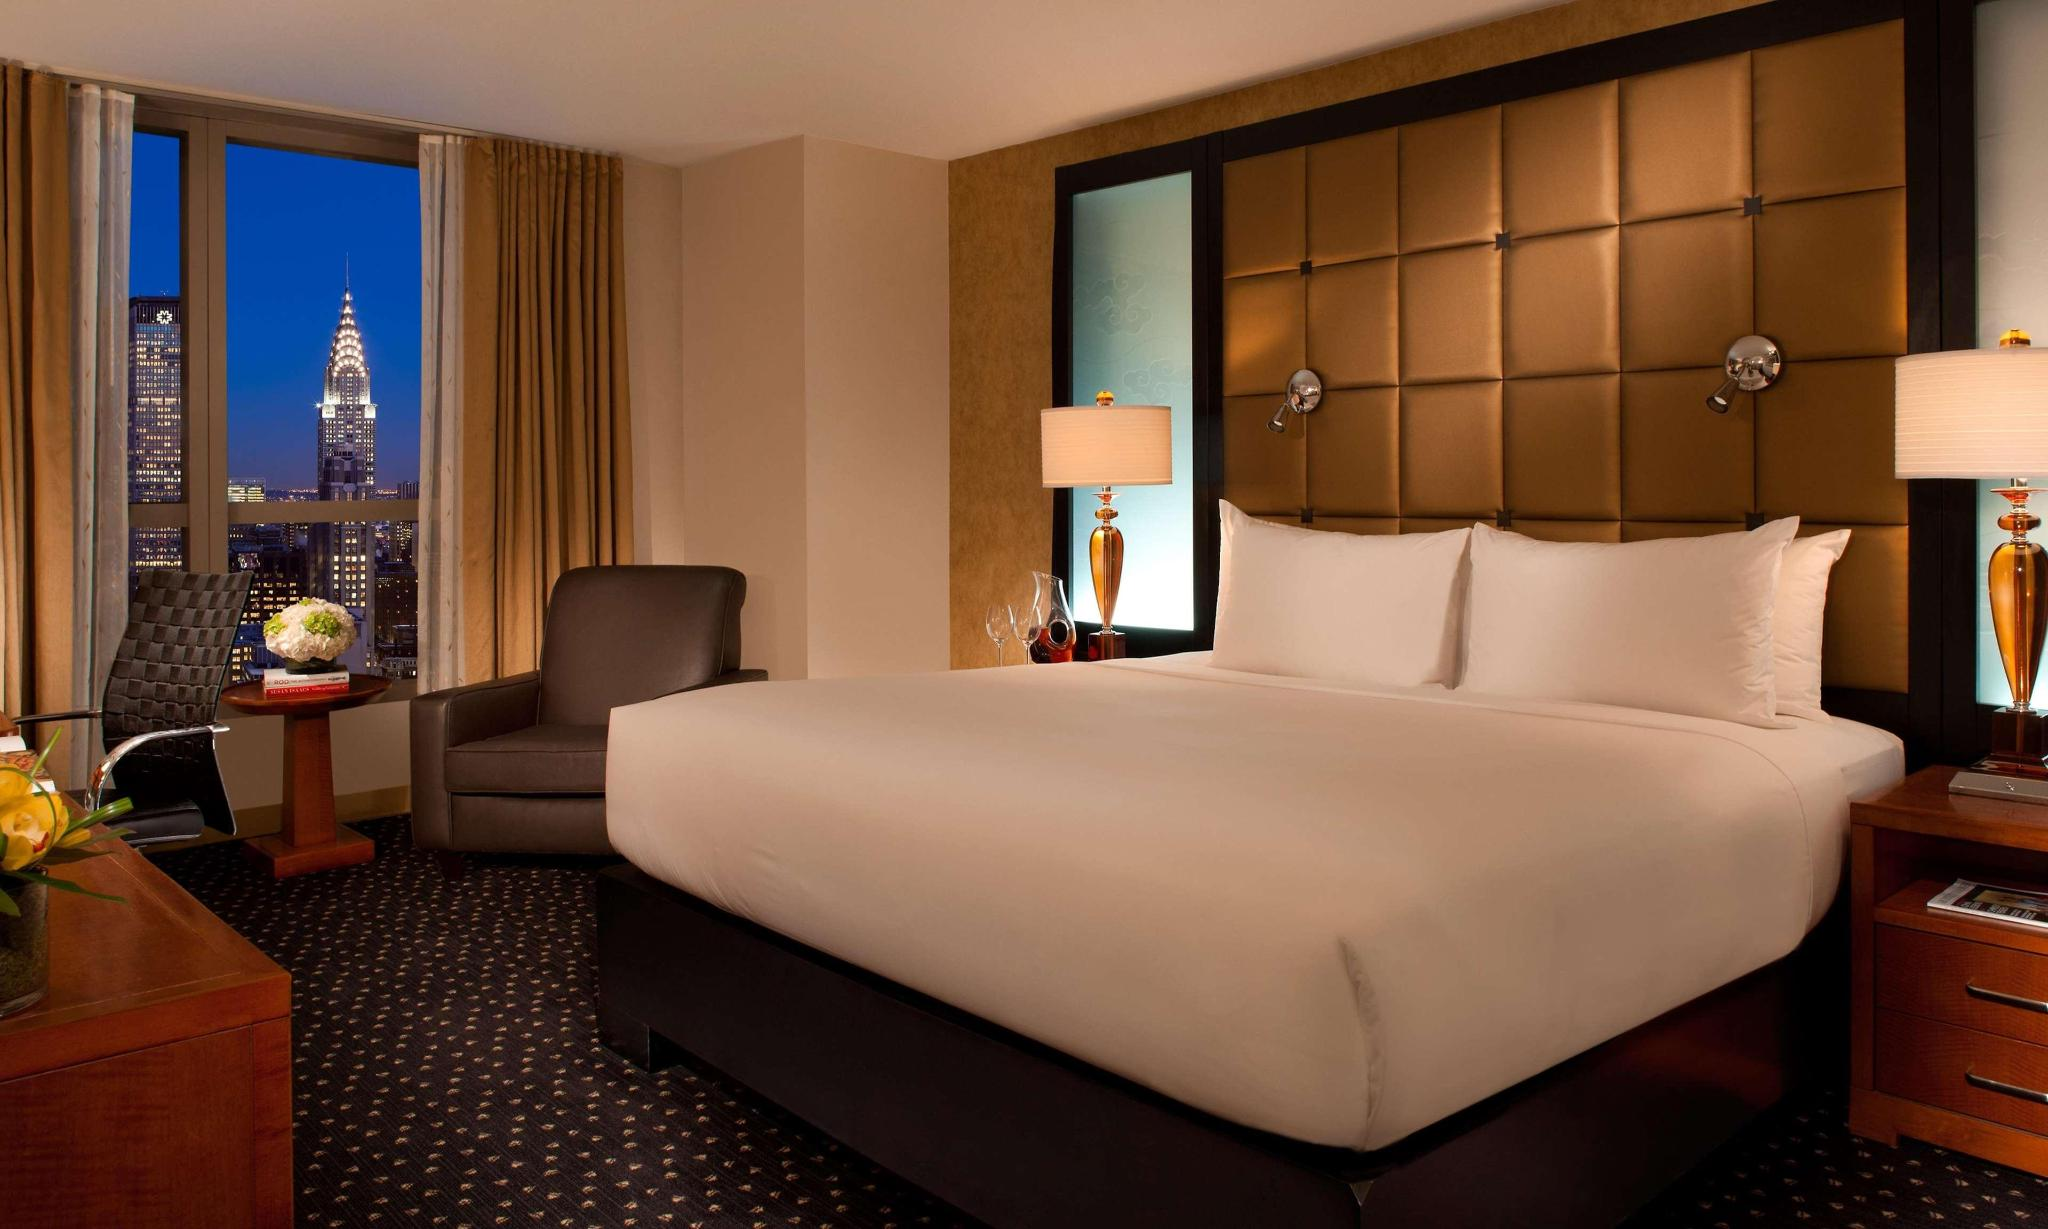 DOUBLE 1 King Bed Deluxe Room